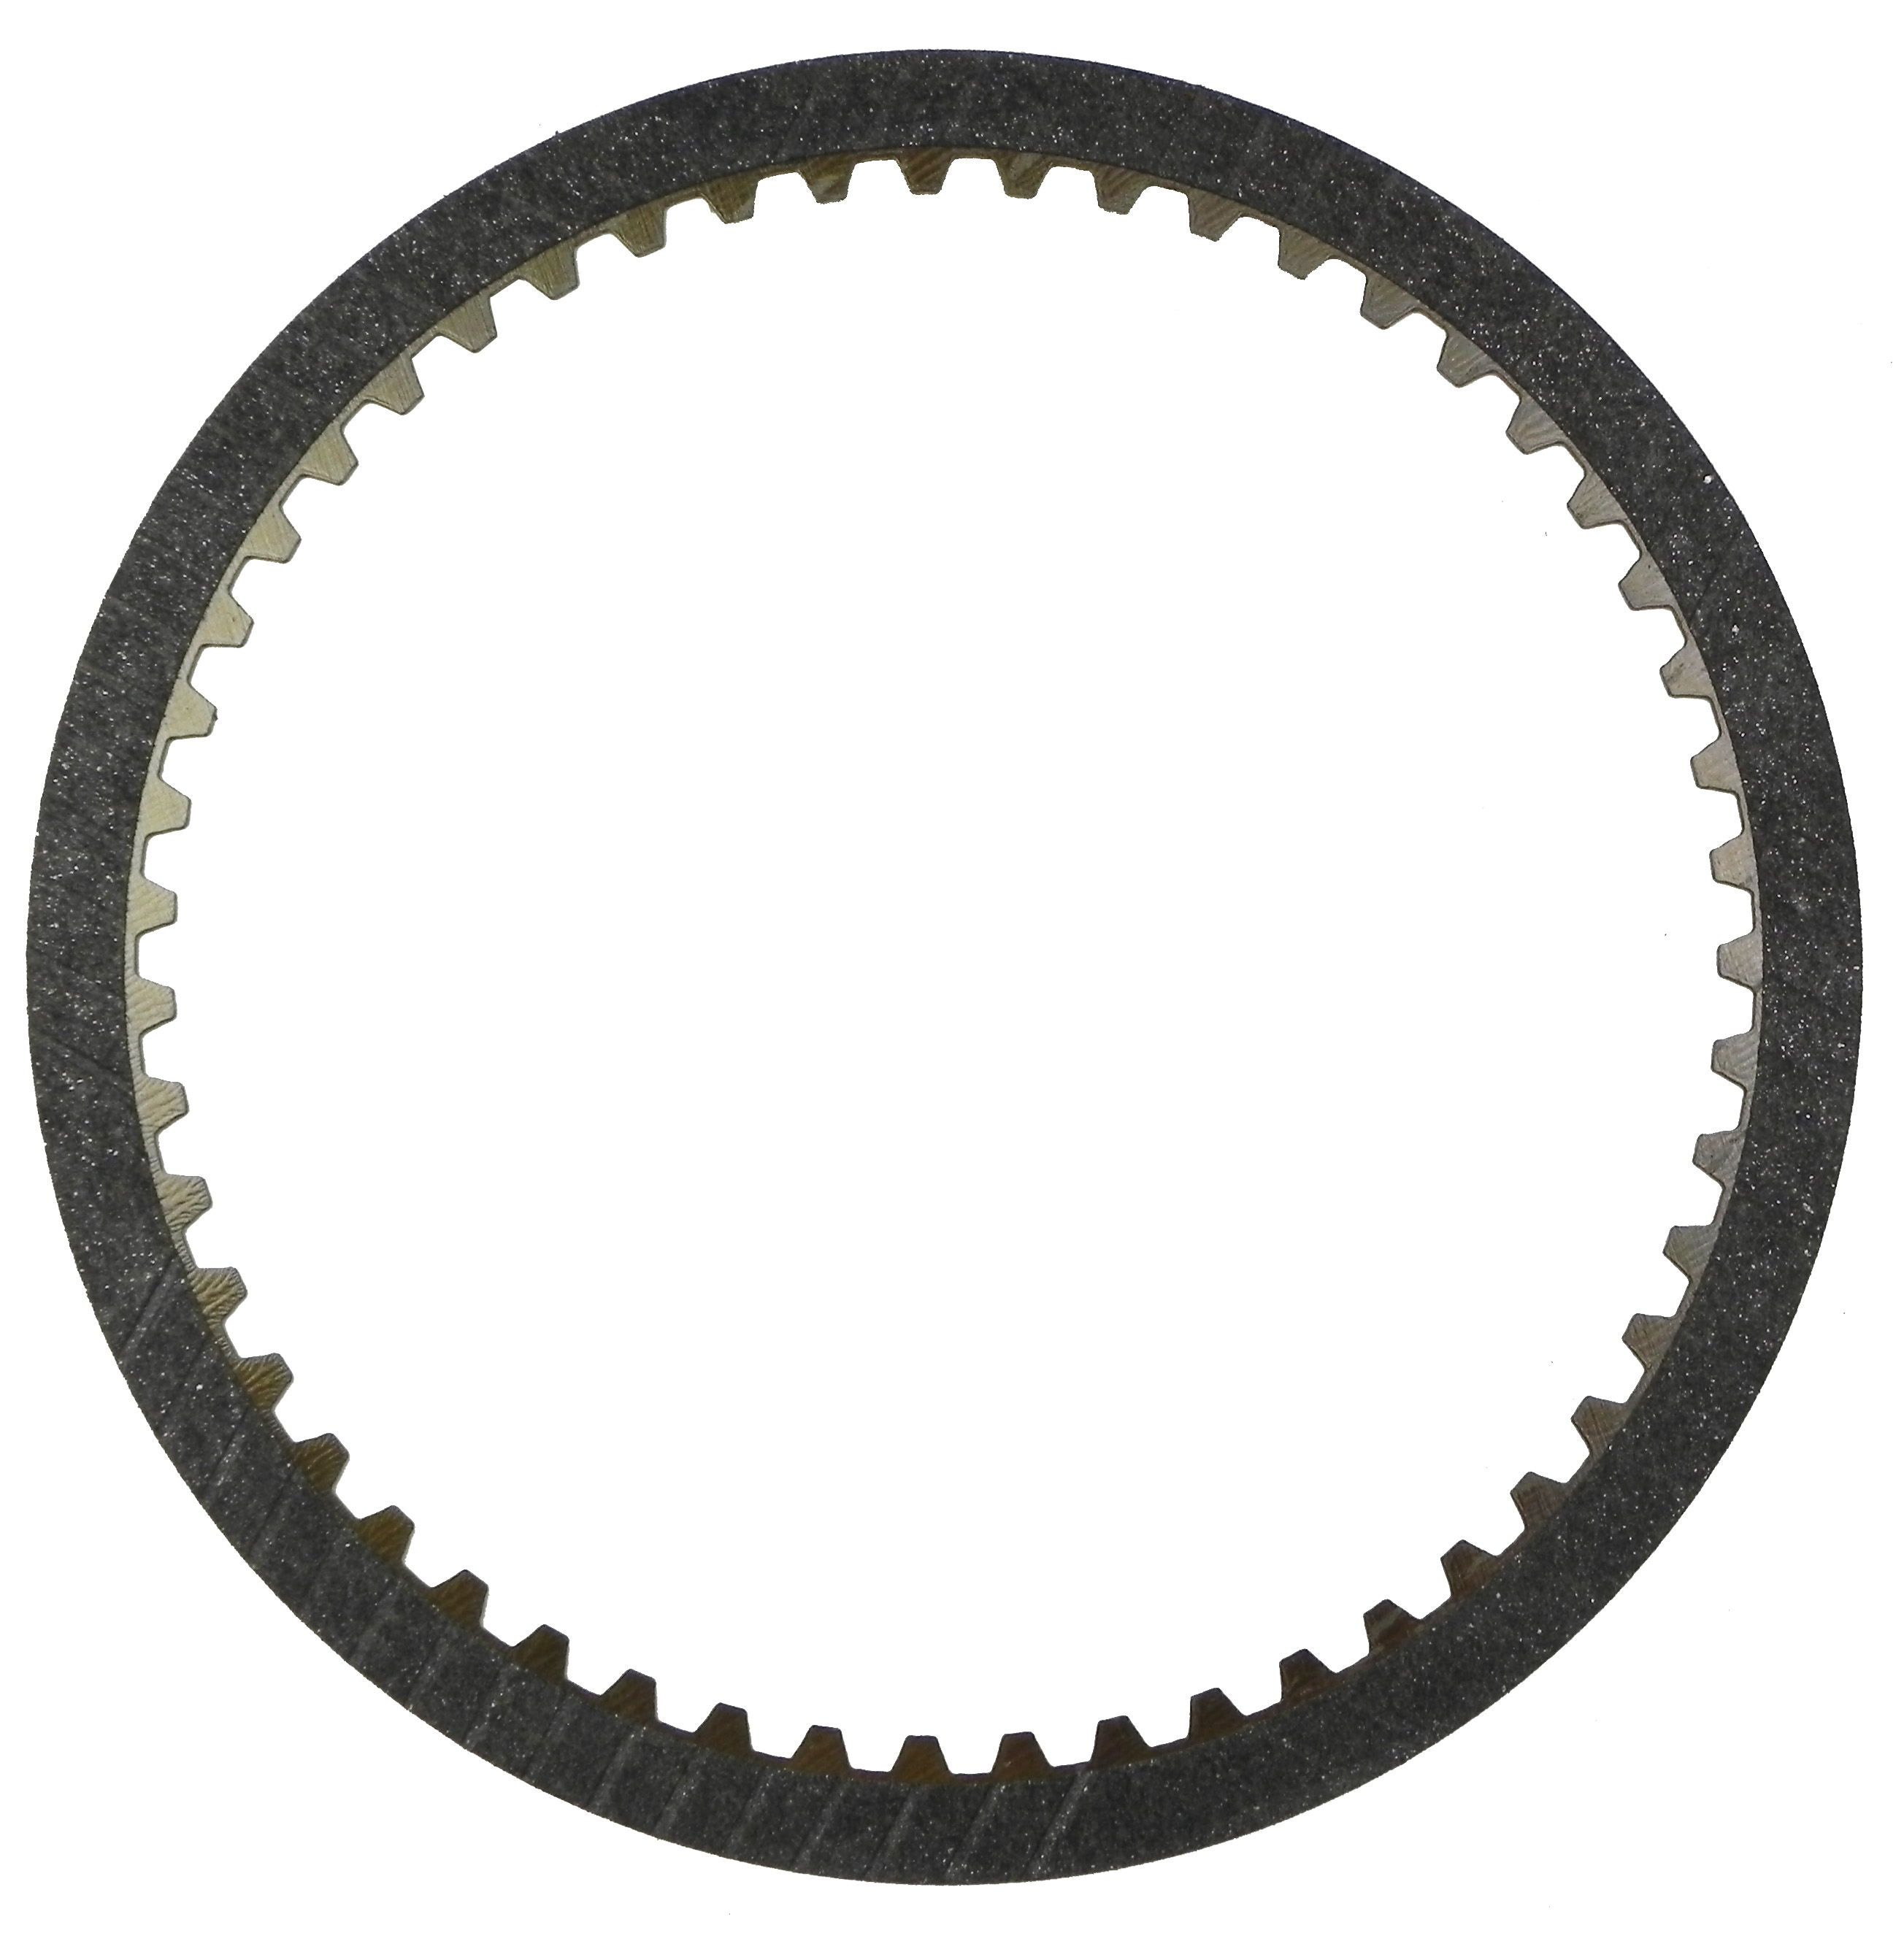 R565140 | 1999-ON Friction Clutch Plate High Energy Low, Reverse Brake High Energy